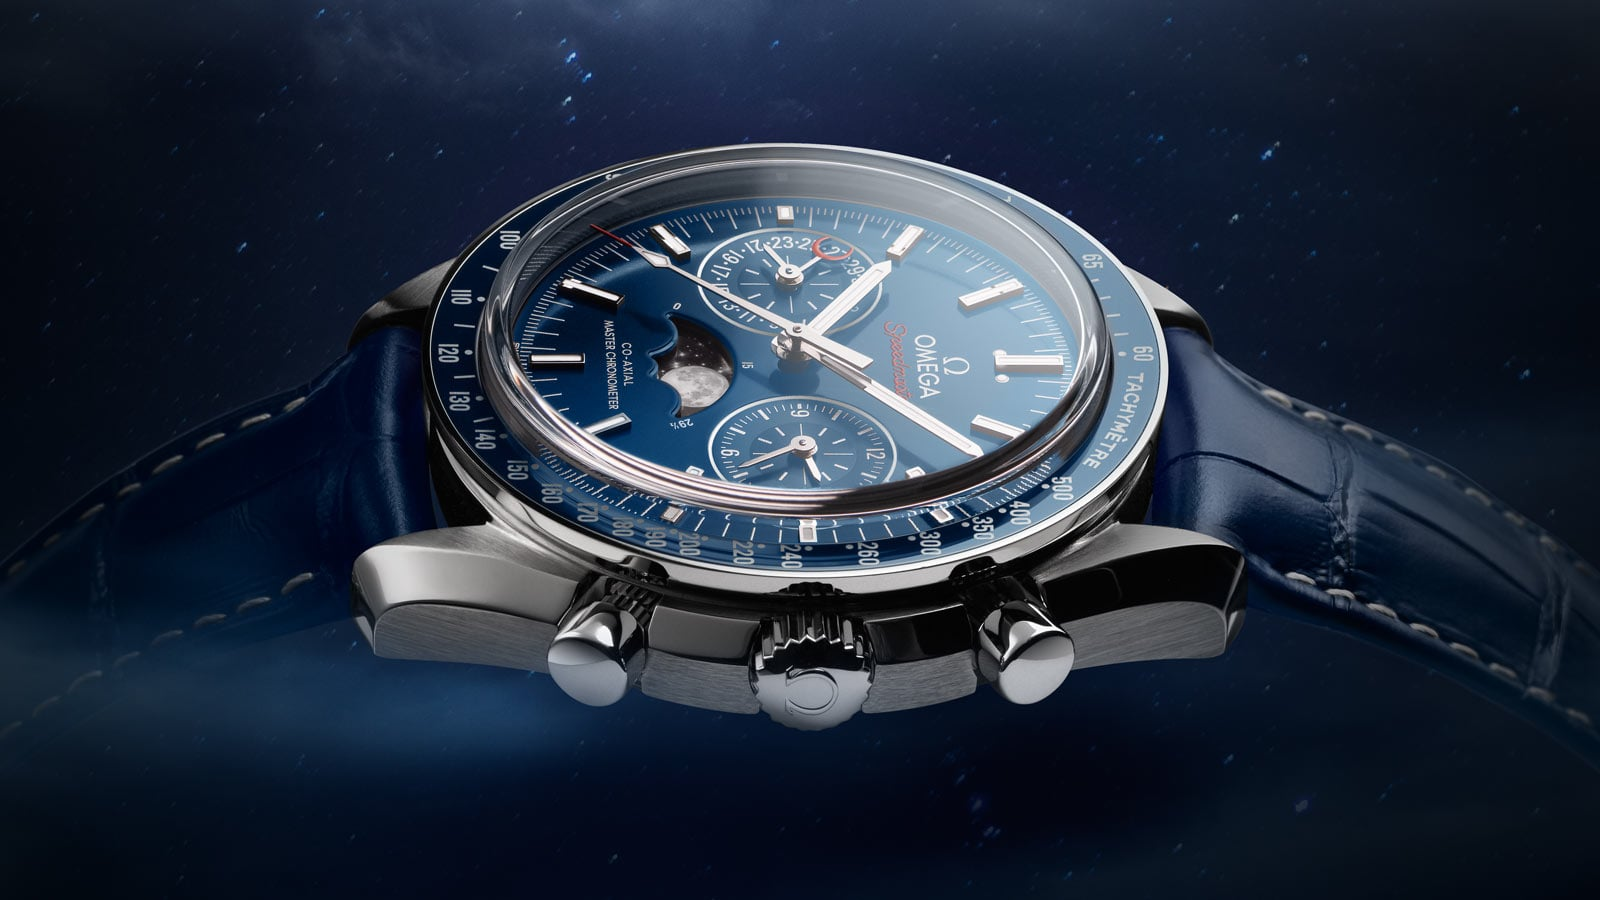 Omega and the world of space exploration - 슬라이드 3 - 34085